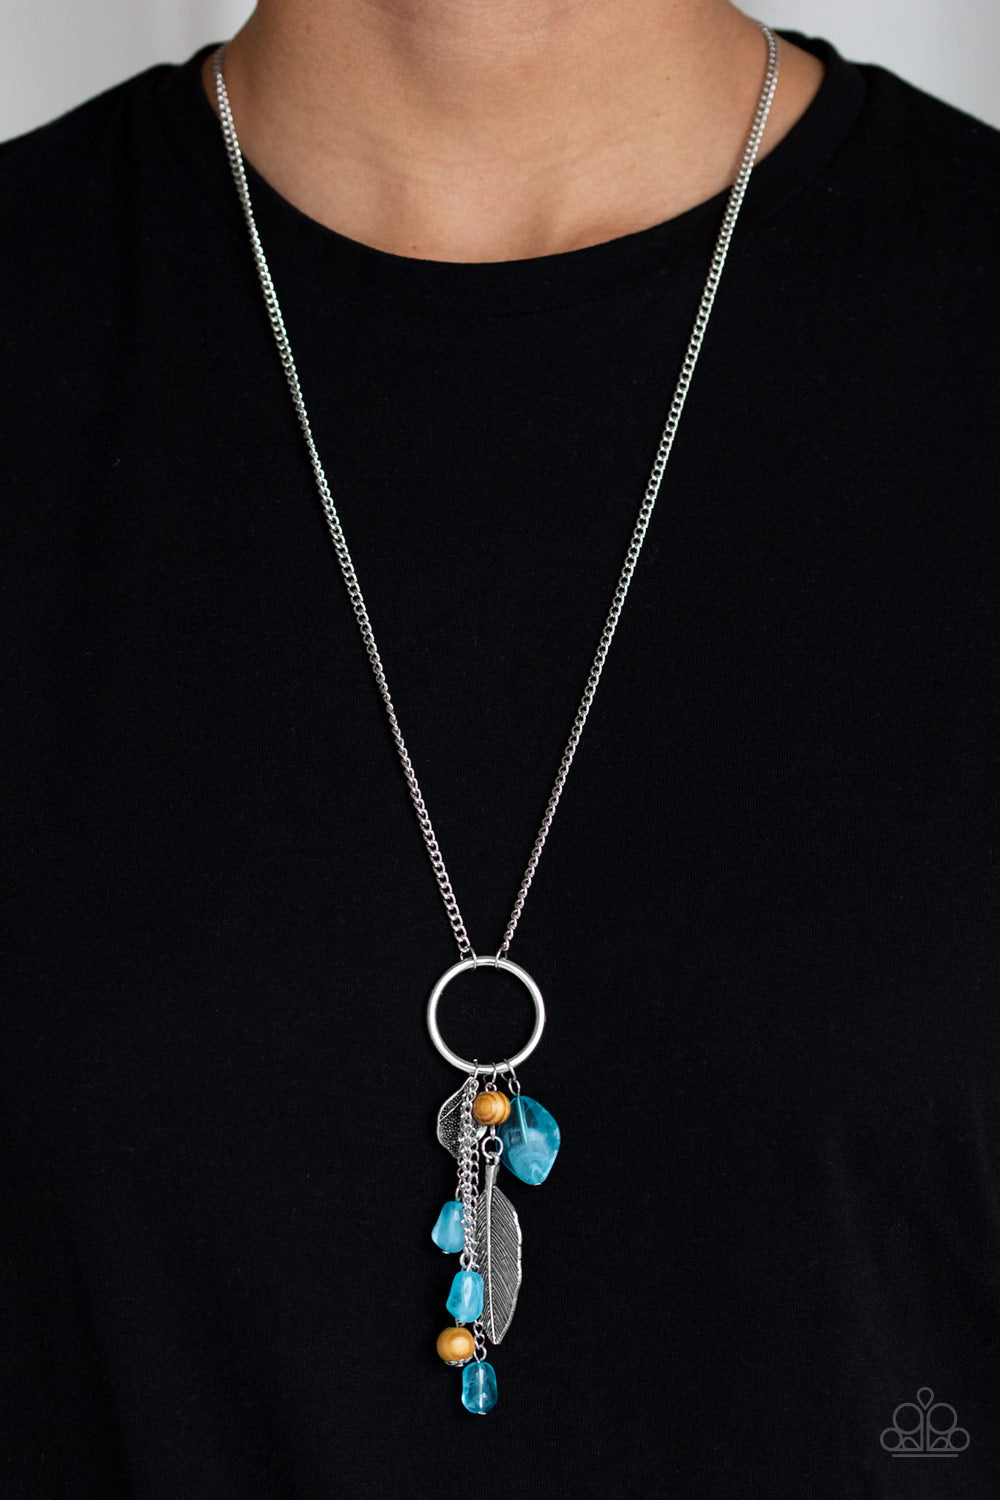 Paparazzi Jewelry & Accessories - Sky High Style - Blue Necklace. Bling By Titia Boutique